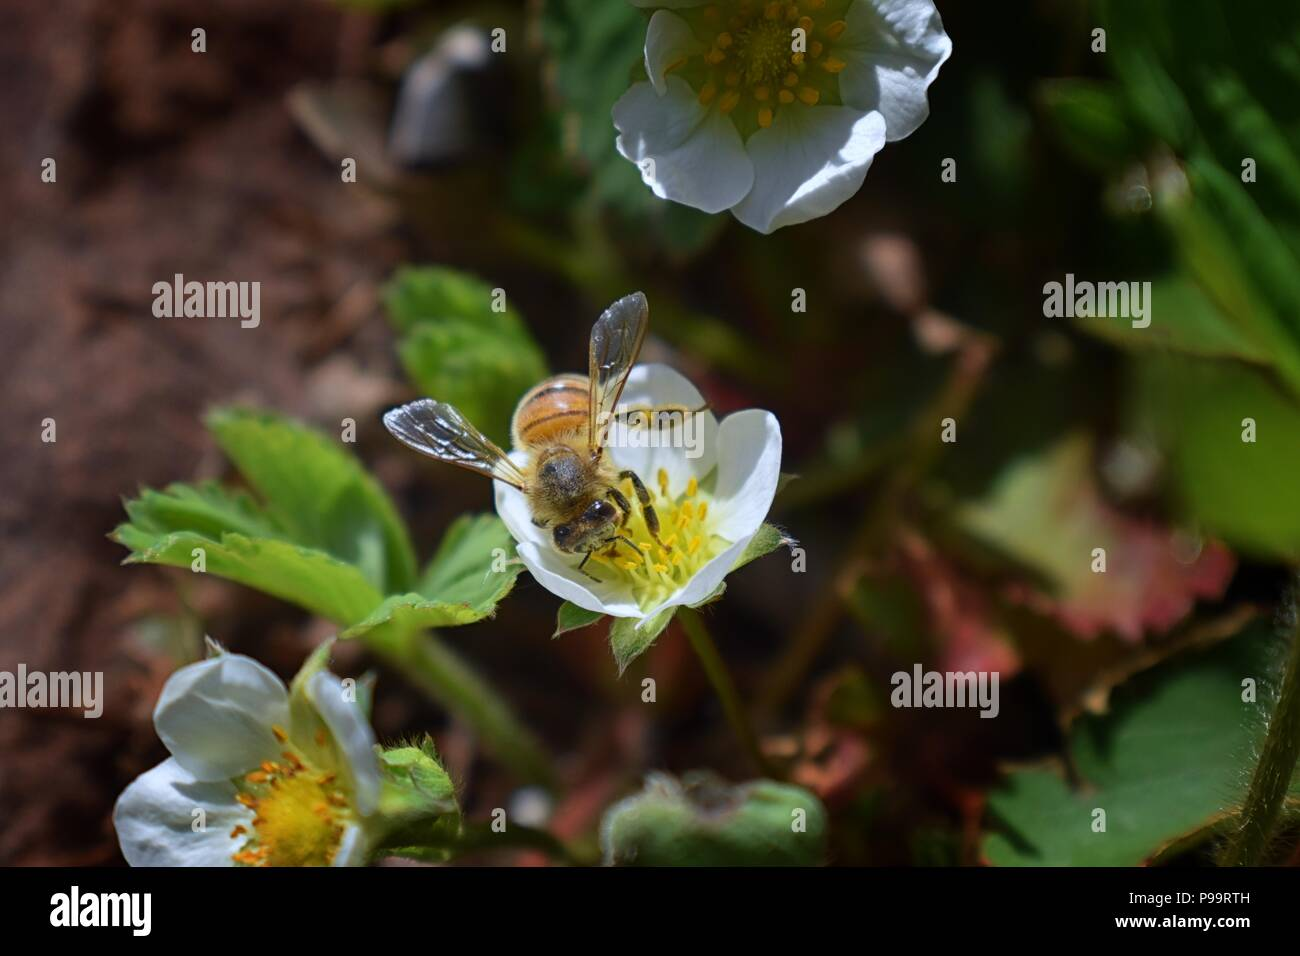 The Honey Bee Pollinates The Flowers Of The Strawberry Which